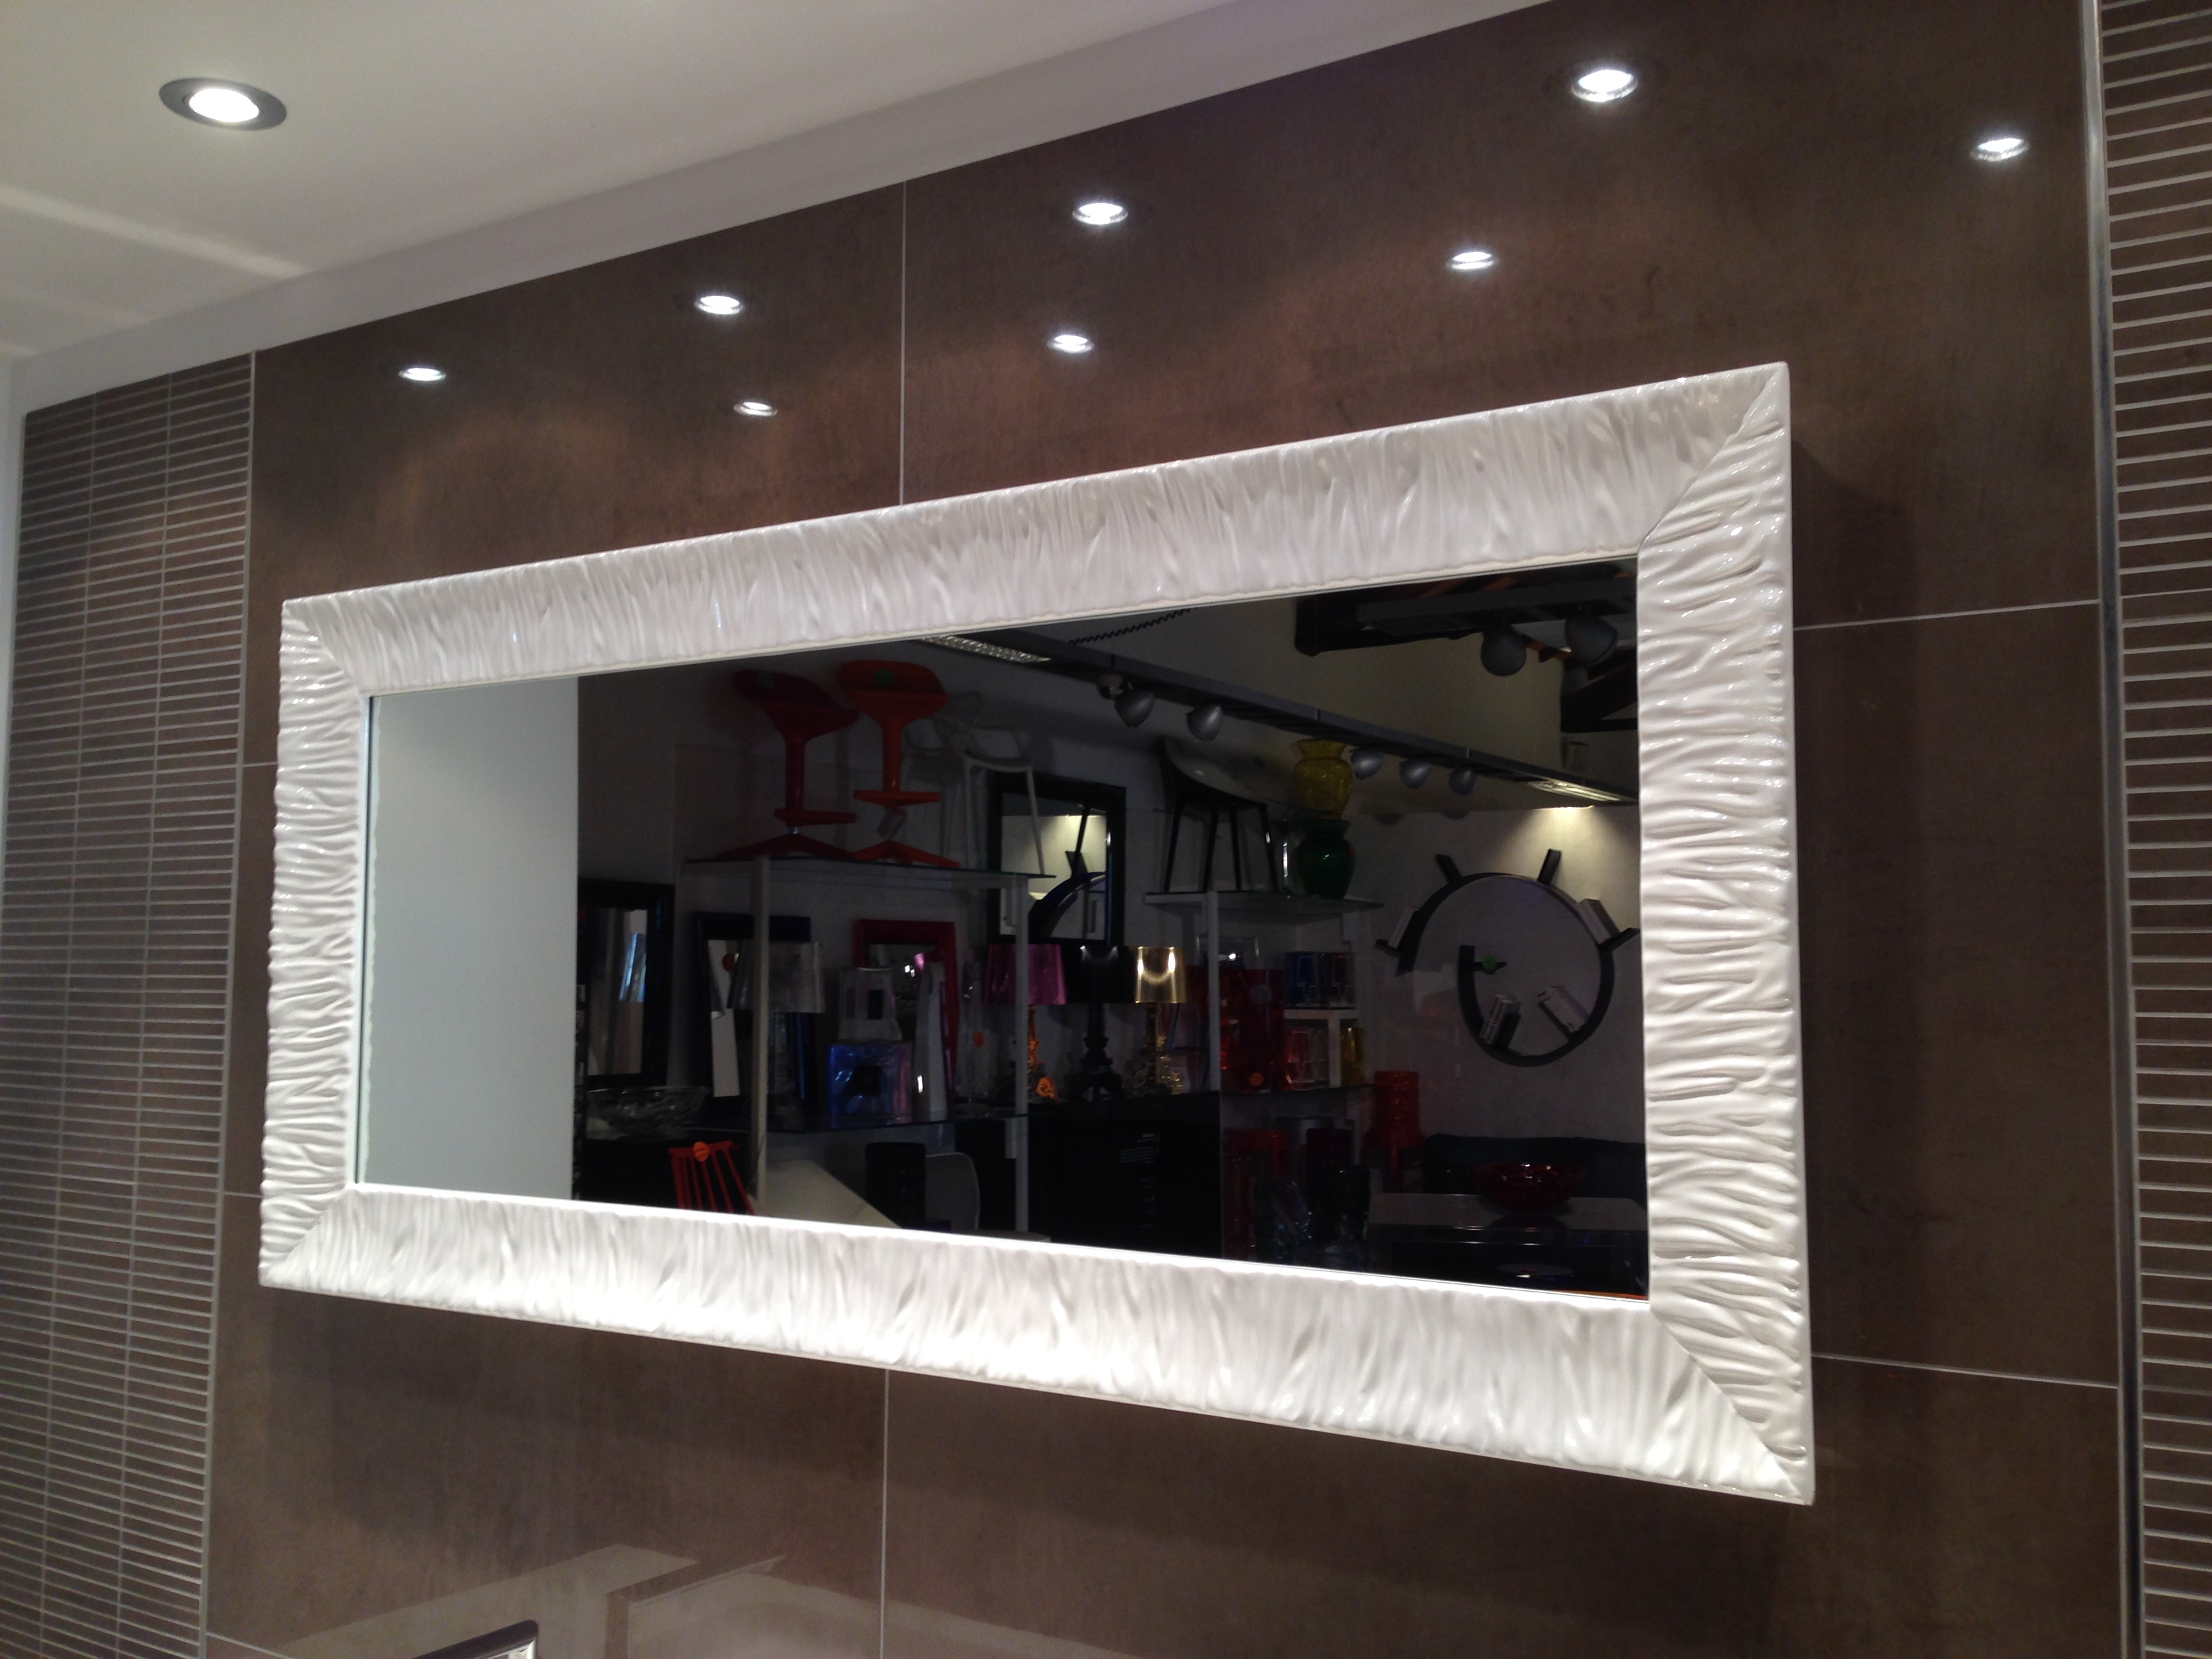 Divani Cassina Outlet: Cuscini decorativi per divano ...